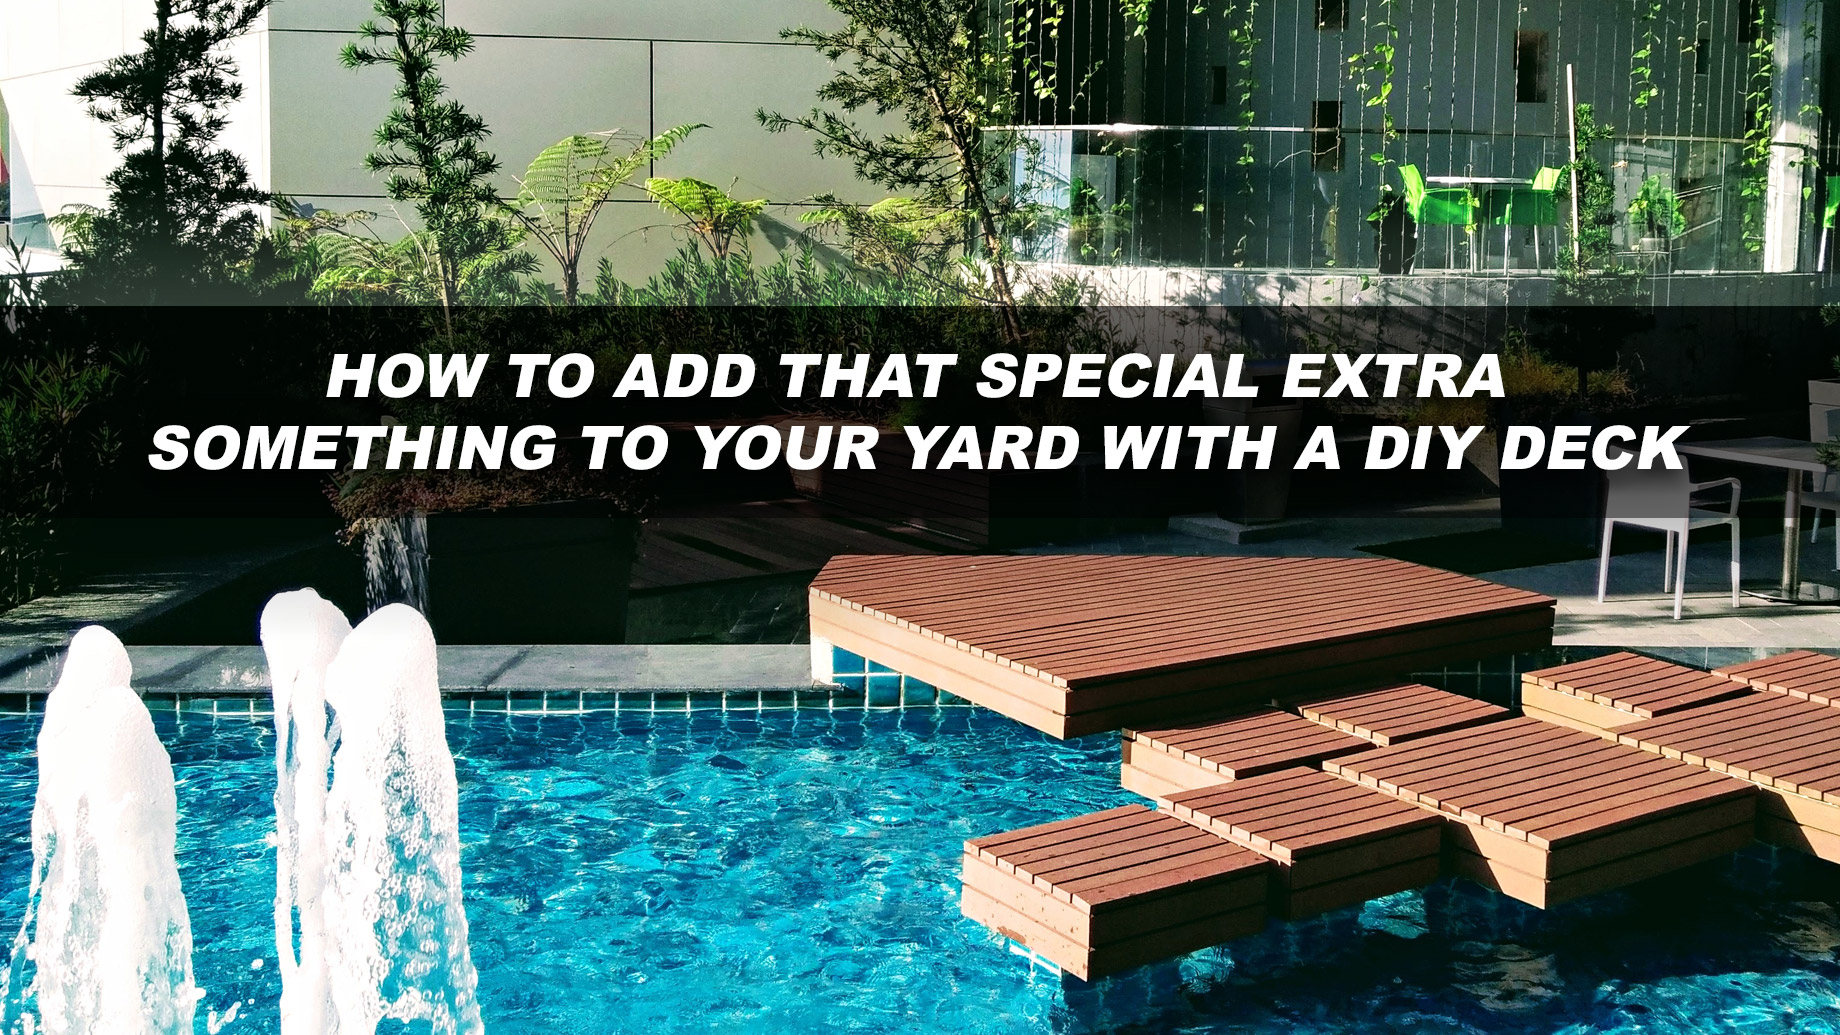 How to Add That Special Extra Something to Your Yard With a DIY Deck